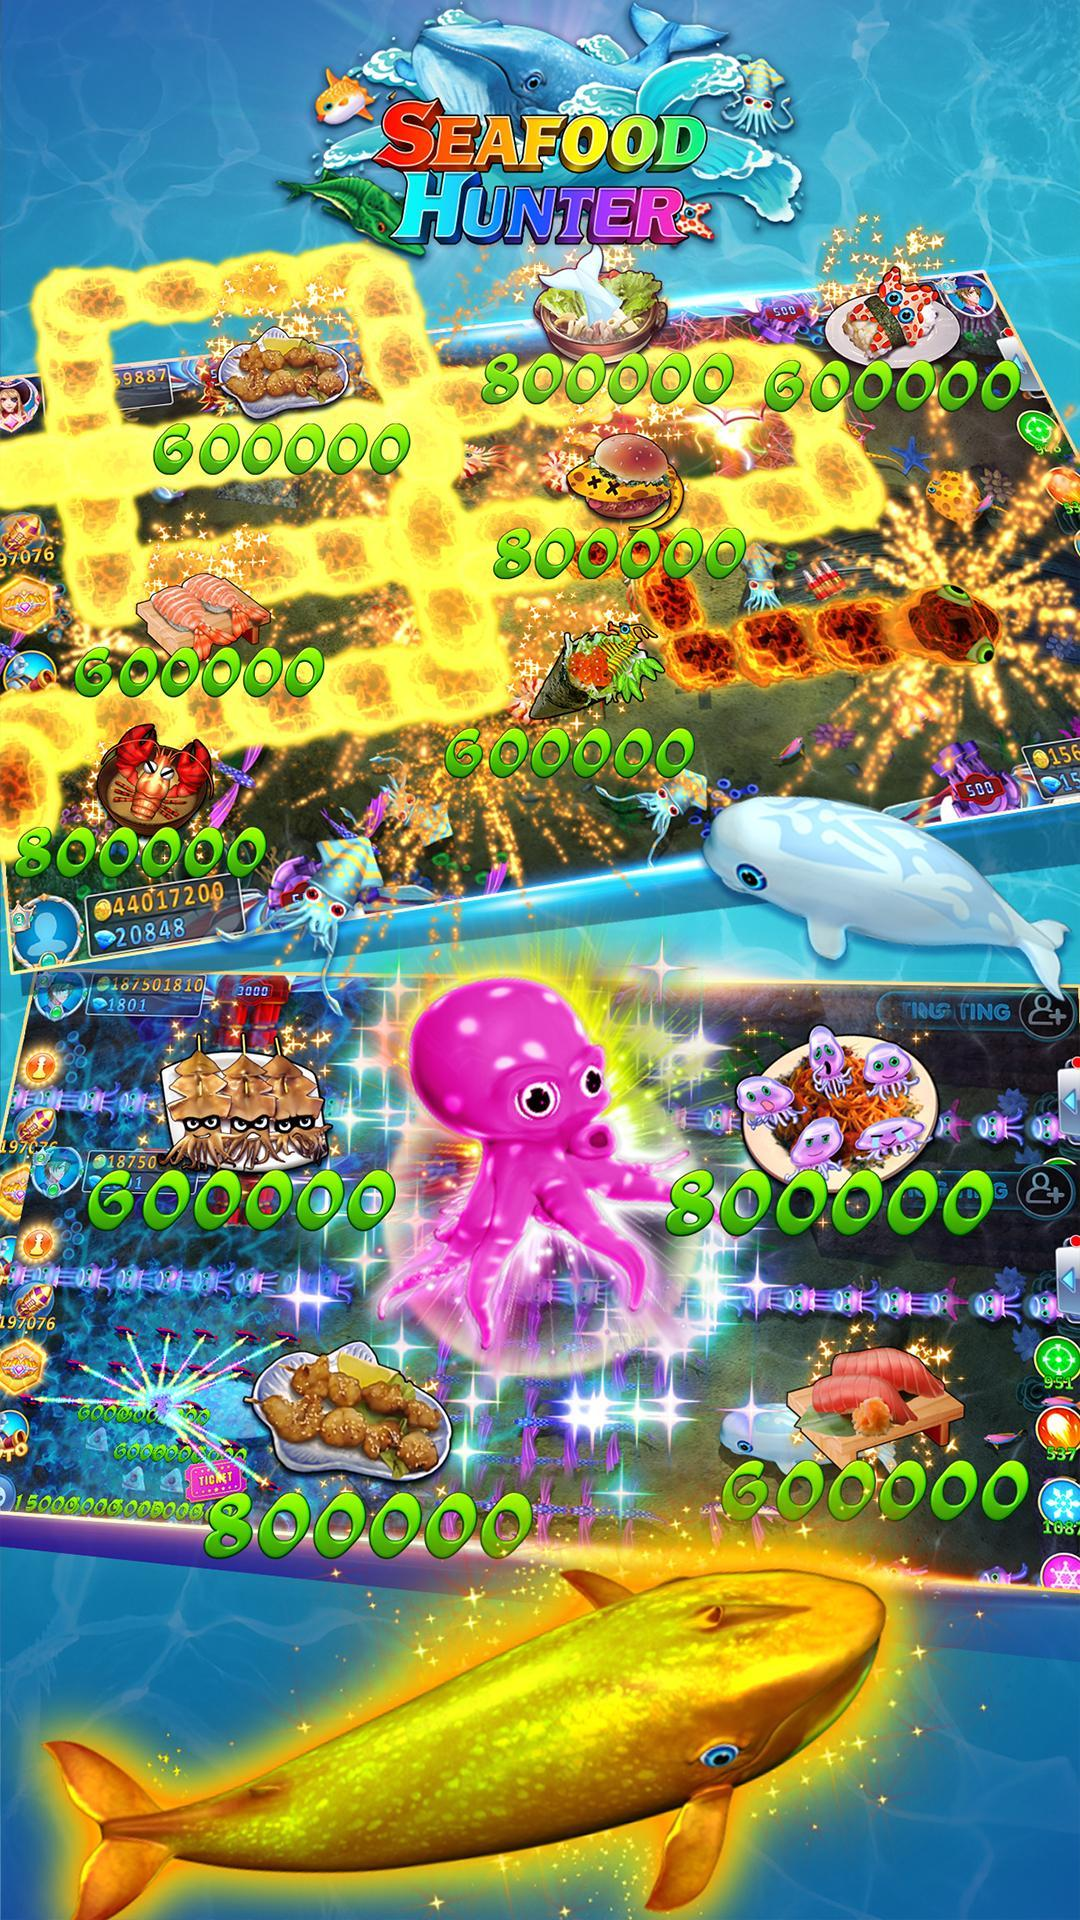 Dragon King Fishing Online-Arcade  Fish Games 5.2.0 Screenshot 6